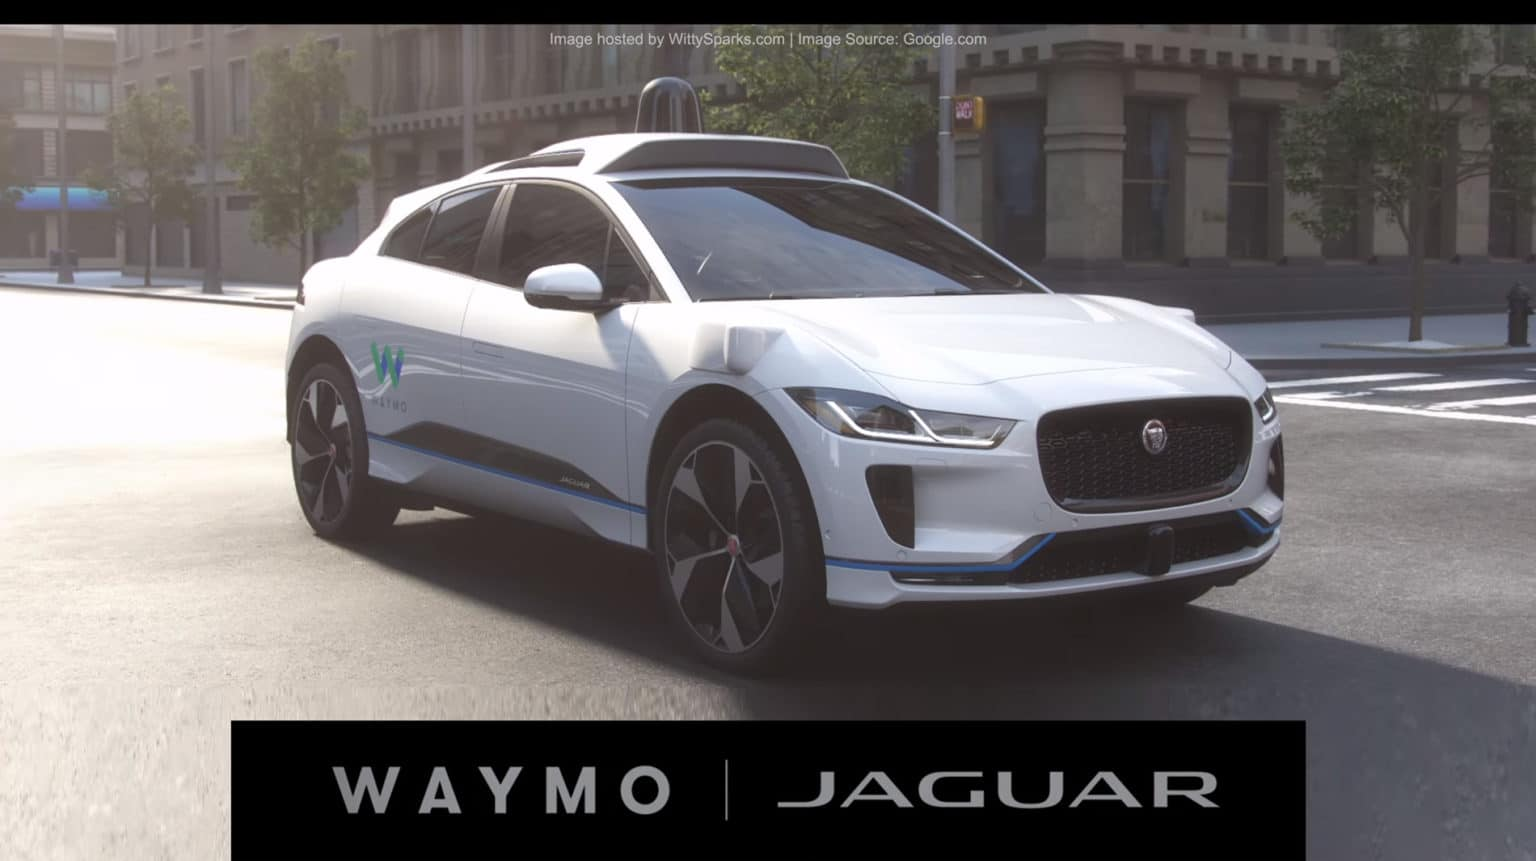 Waymo began as the Google self-driving car project in 2009